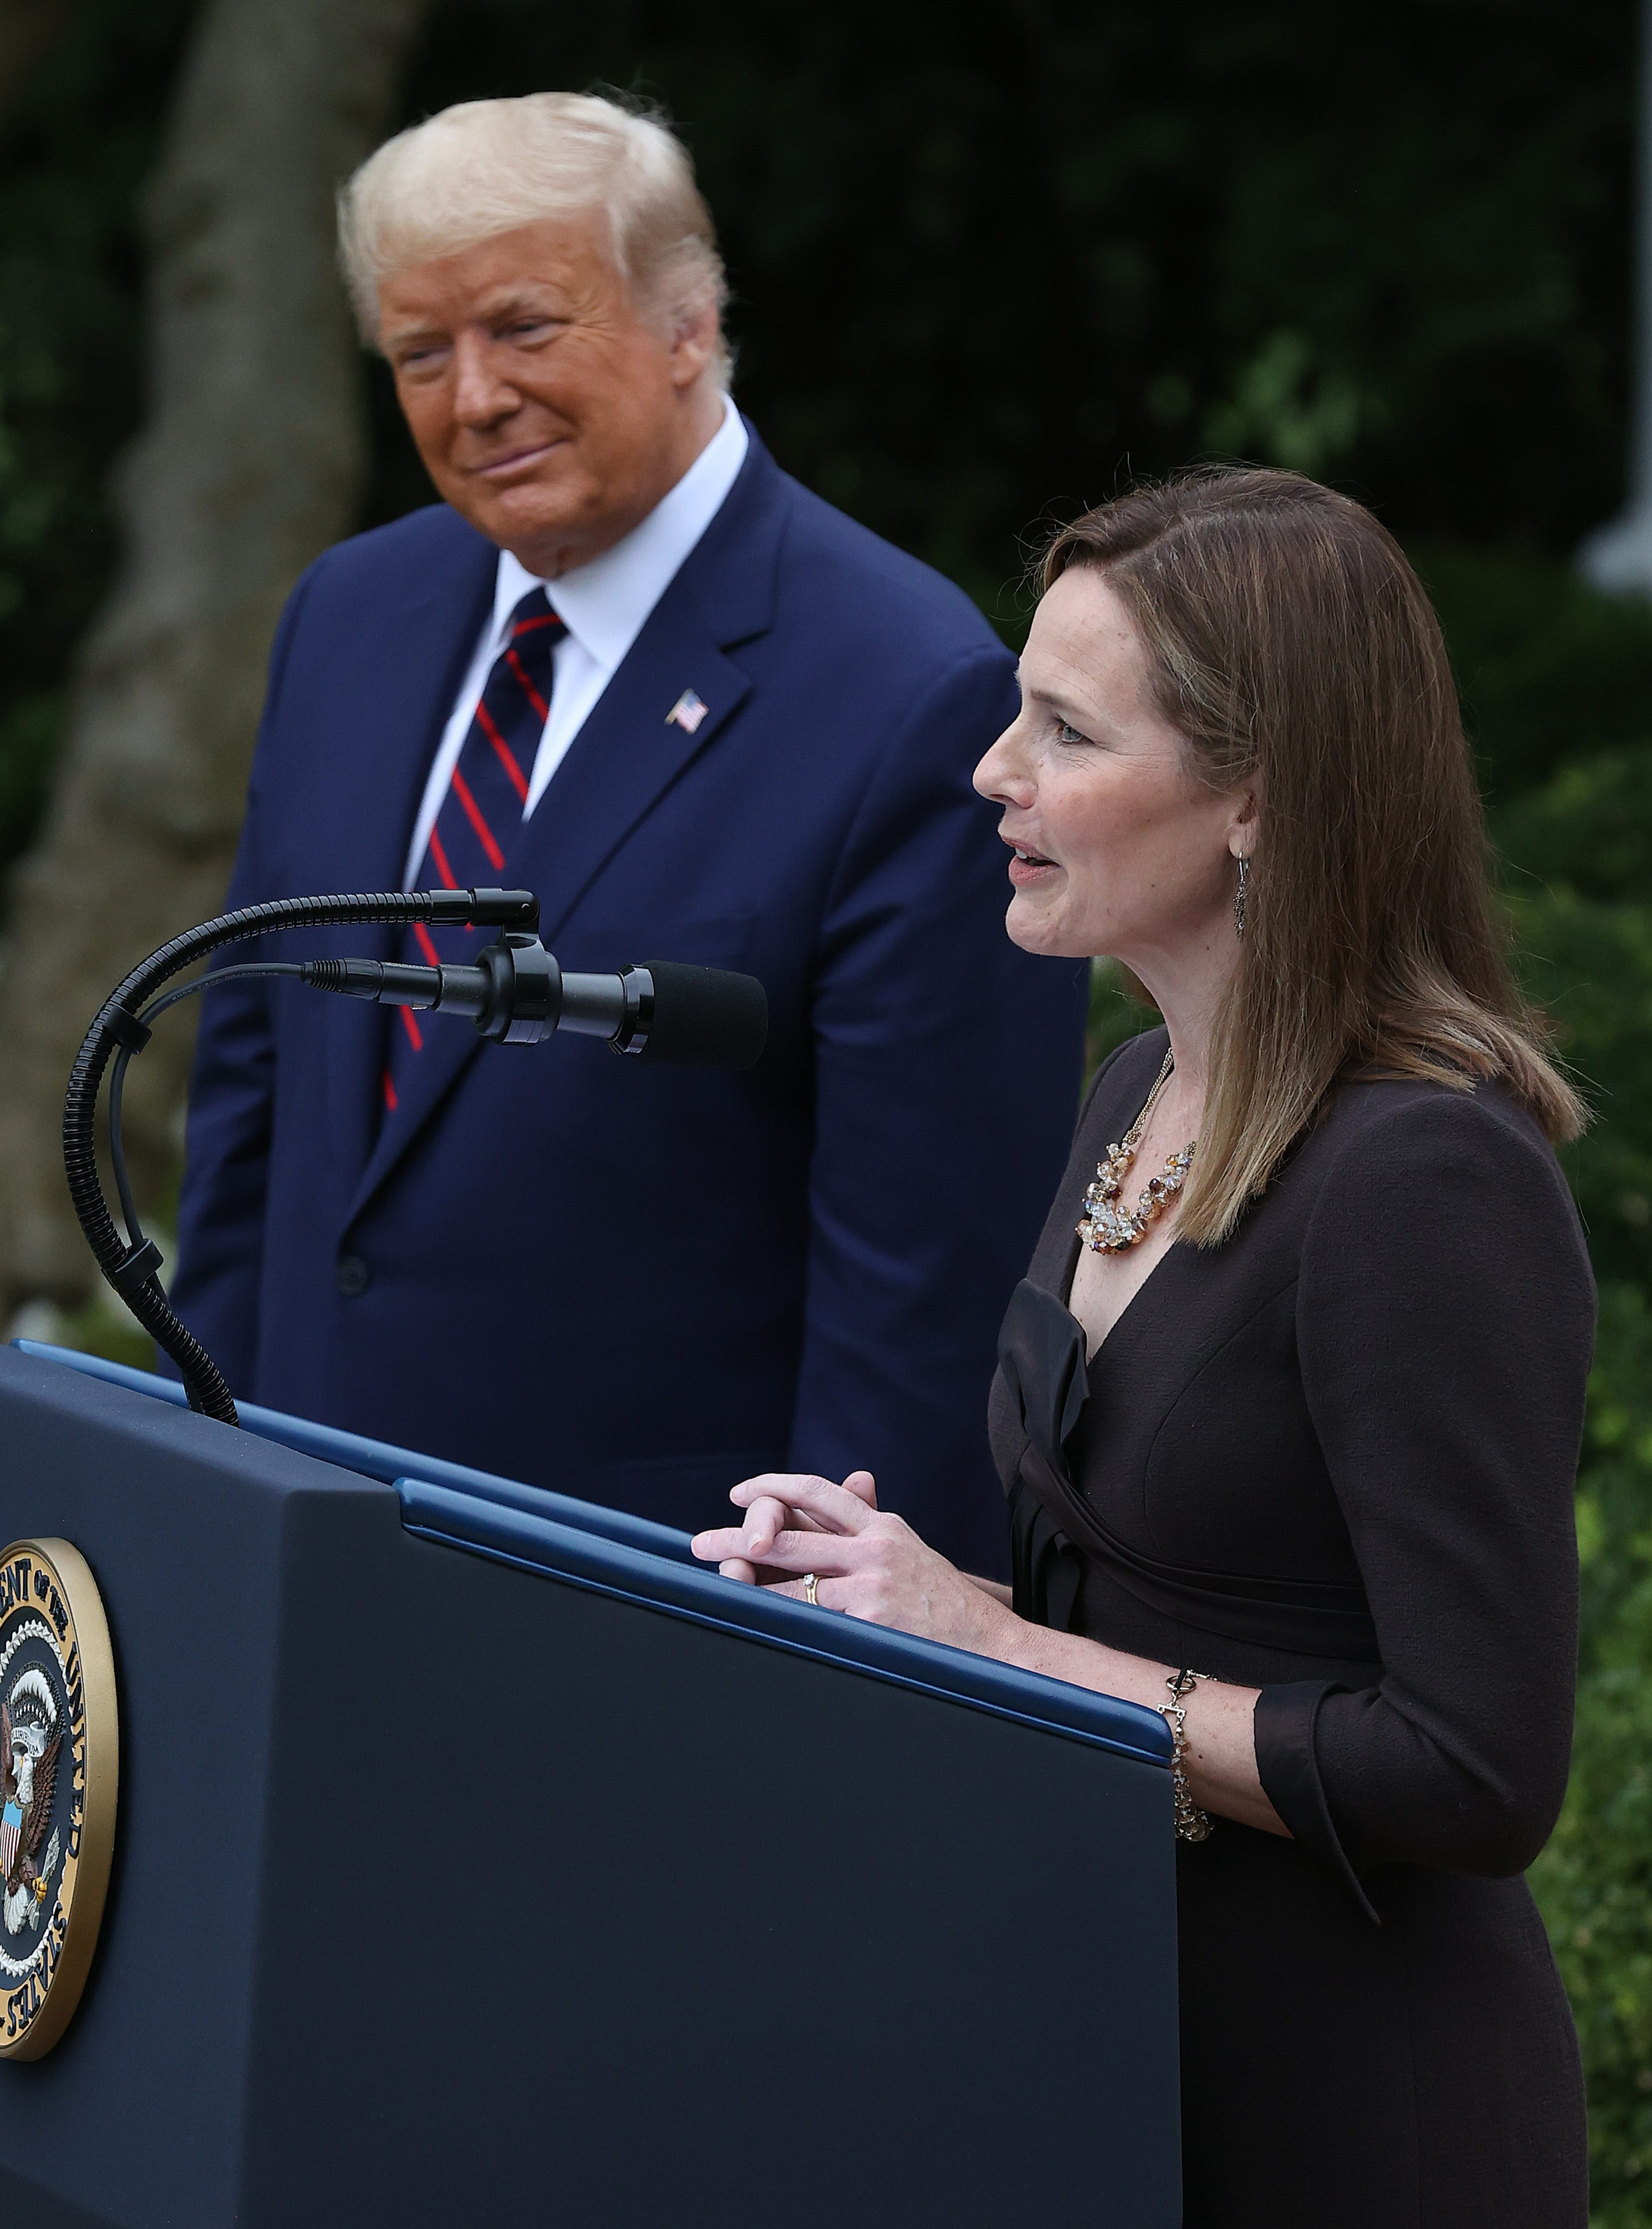 After Donald Trump nominates Amy Coney Barrett, Senate now must ask these questions